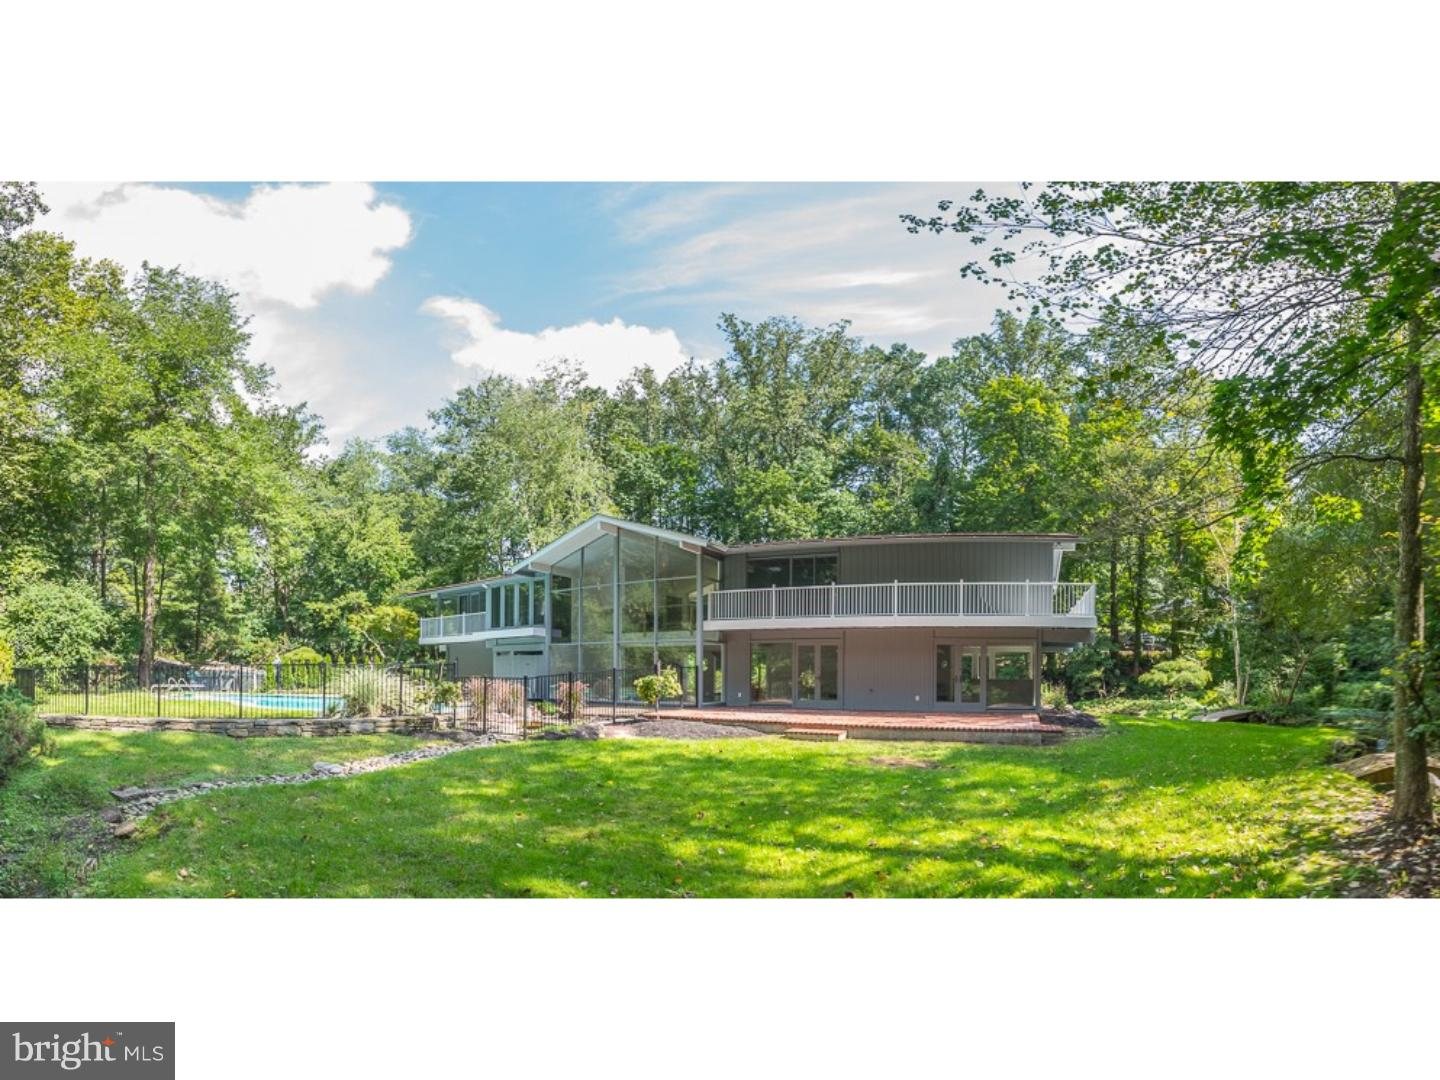 Island oasis in the outskirts of Gladwyne,  Enjoy the privacy away from civilization with all the comforts of a summer home,  pool, streams and your own fishing pond.  Live like there's no tomorrow today.  Welcome to 713 Waverly Road in Bryn Mawr. Newly renovated from top to bottom, this stunning contemporary home features 4 bedrooms, 2 full bathrooms, 1 powder room and over 3,500 square feet of fabulous living space. This home showcases views of the entire property with floor to ceiling windows that blur the line between indoors and out. The open floor plan and seamless indoor-outdoor integration is perfect for entertaining friends and family. The main floor includes beautiful Brazilian Cherry wood floors, a dining room, family room, and living room with wood burning fireplace that opens up to the expansive outdoors surrounded by lush trees, beautiful landscaping and a stream. The eat-in chef's kitchen has beautiful premium Quartz countertops, custom cabinets, stainless steel appliances and a large walk in pantry. A powder room, laundry room and access to the 2-car garage complete the first floor. The floating wood staircase leads you to the upper level which includes a second family room with wood burning fireplace and White Oak hardwood floors. A luxurious master suite, with sweeping views of the backyard, includes a large walk in closet and glass sliding doors that open to a private balcony. The beautiful master bathroom has a double vanity, glass enclosed shower, soaking tub and large glass windows. Three sizable bedrooms, all with sliding glass doors that lead to balconies, a hall bathroom and linen closet complete the second floor. The private backyard is an outdoor enthusiasts dream. A brick patio overlooks a beautiful fenced in pool, lush gardens, creek with two bridges and lots of greenery. This ideal location is minutes to 476, 76 and Center City all while in the award-winning Lower Merion School District.